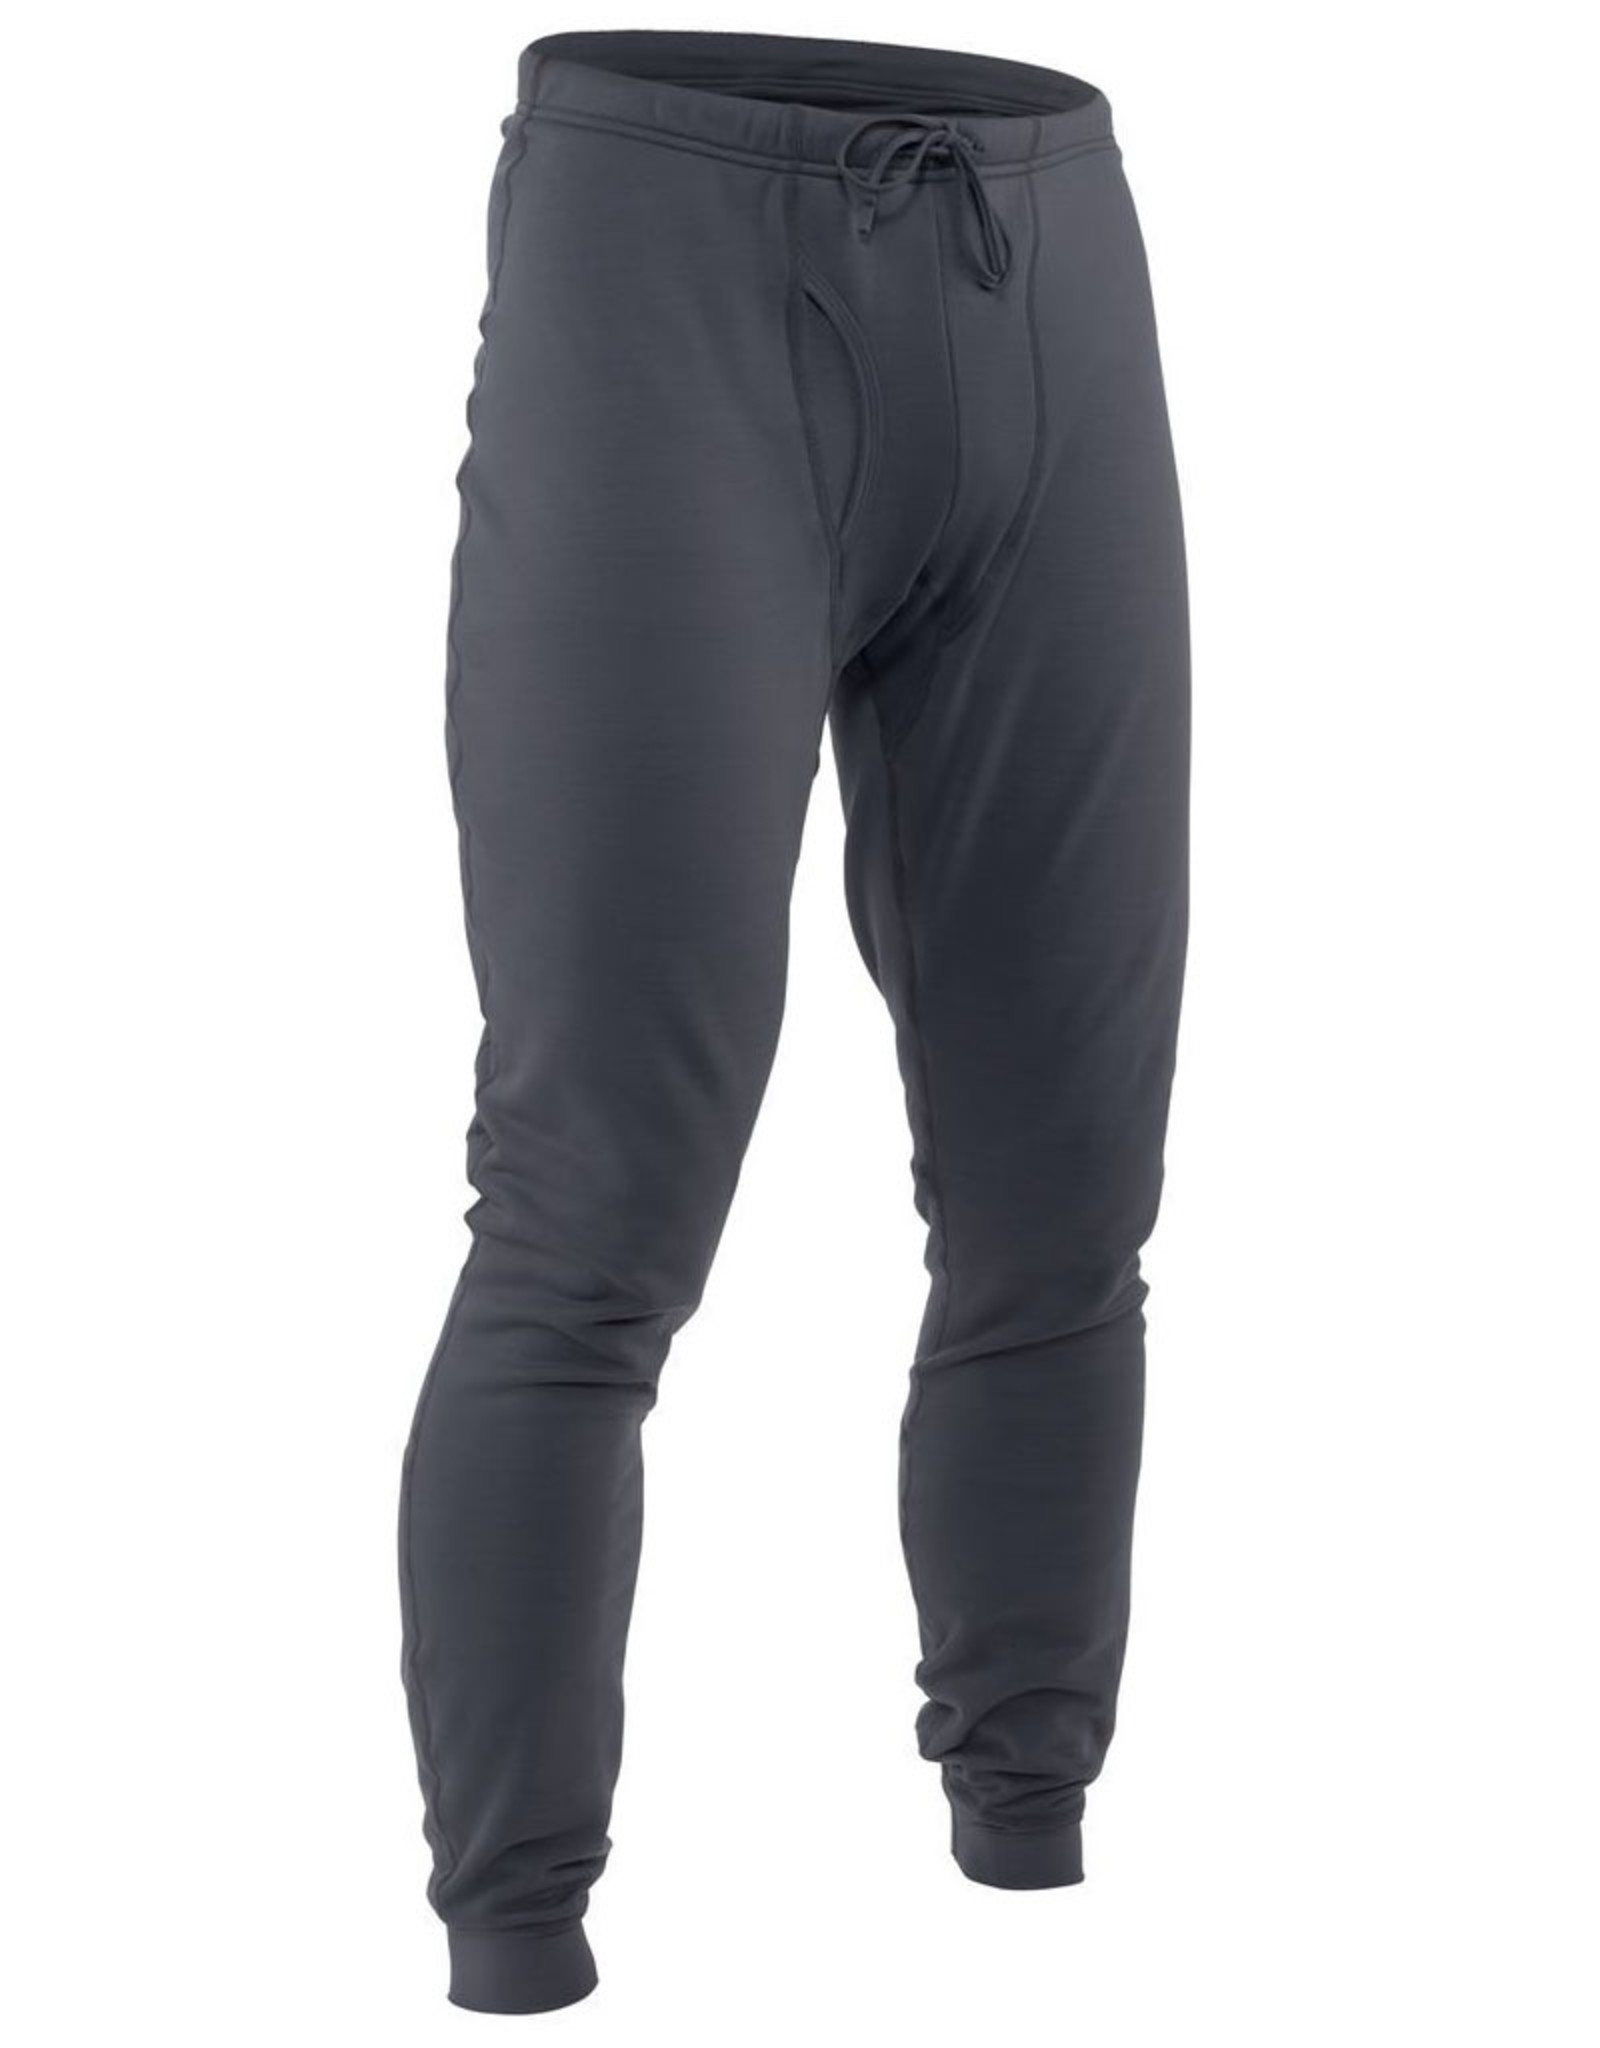 NRS NRS H2Core Expedition Pant - Men